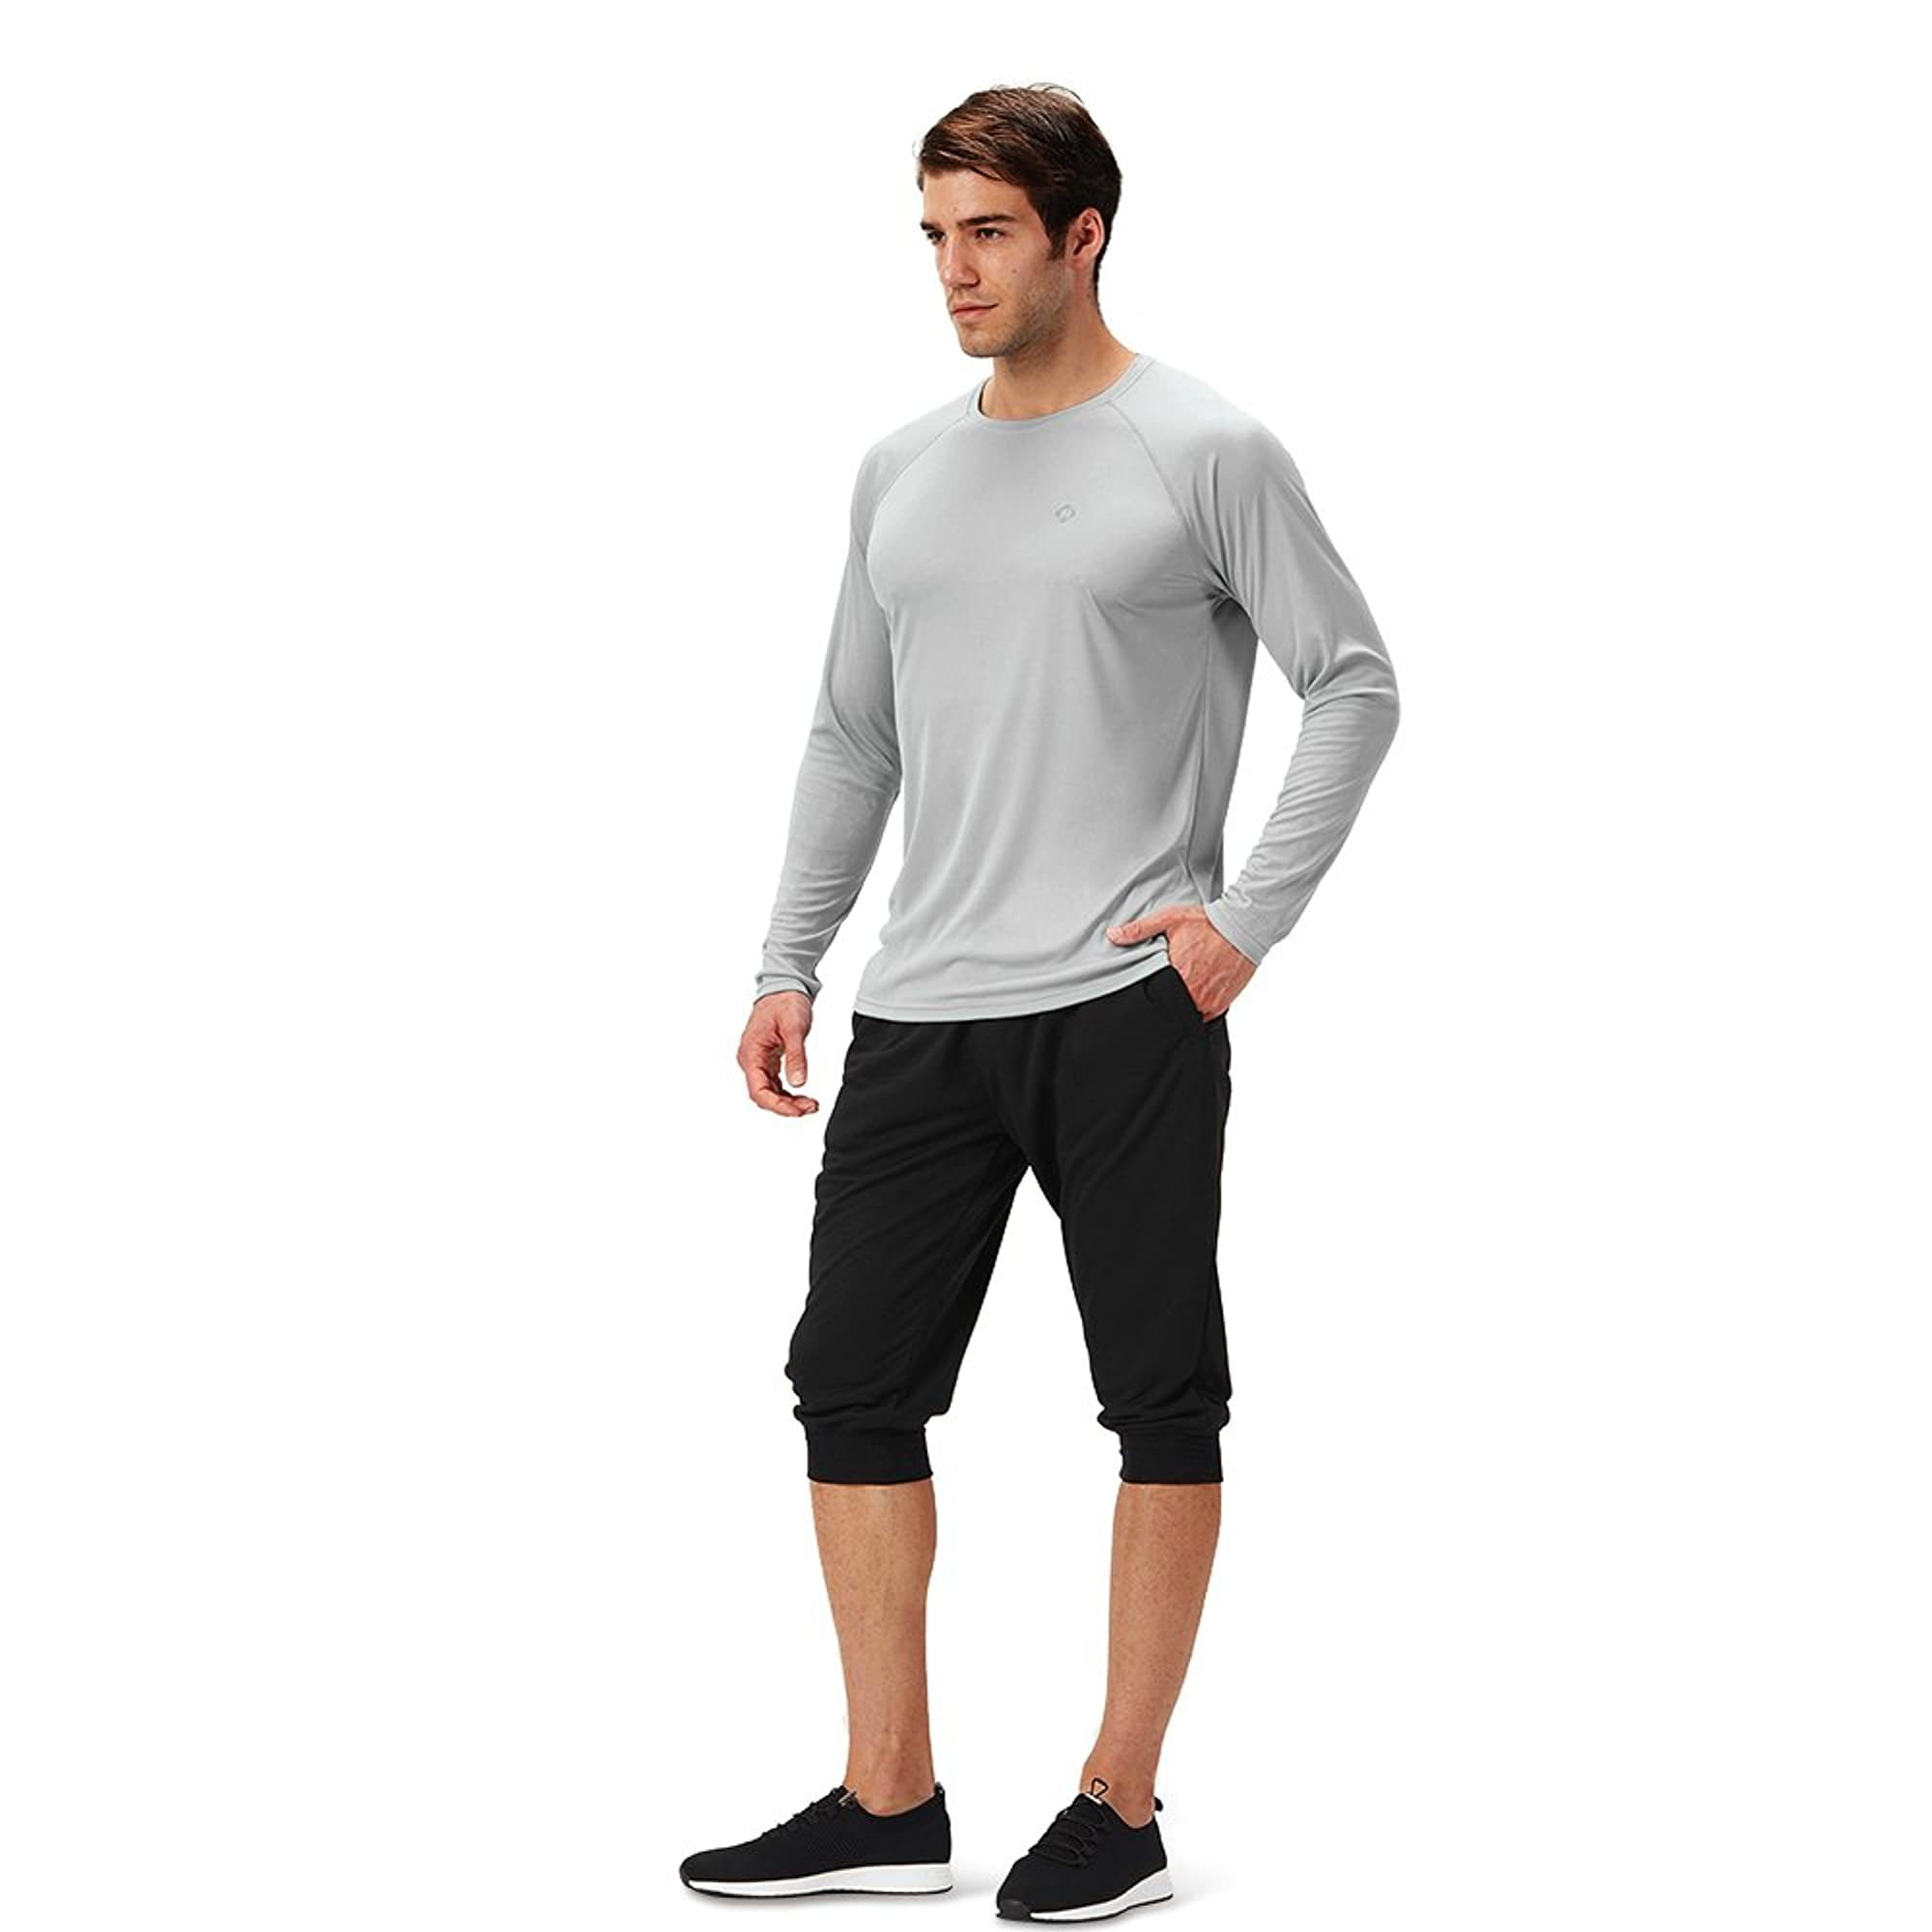 Long Sleeve T-Shirts For Men With Sun Protection